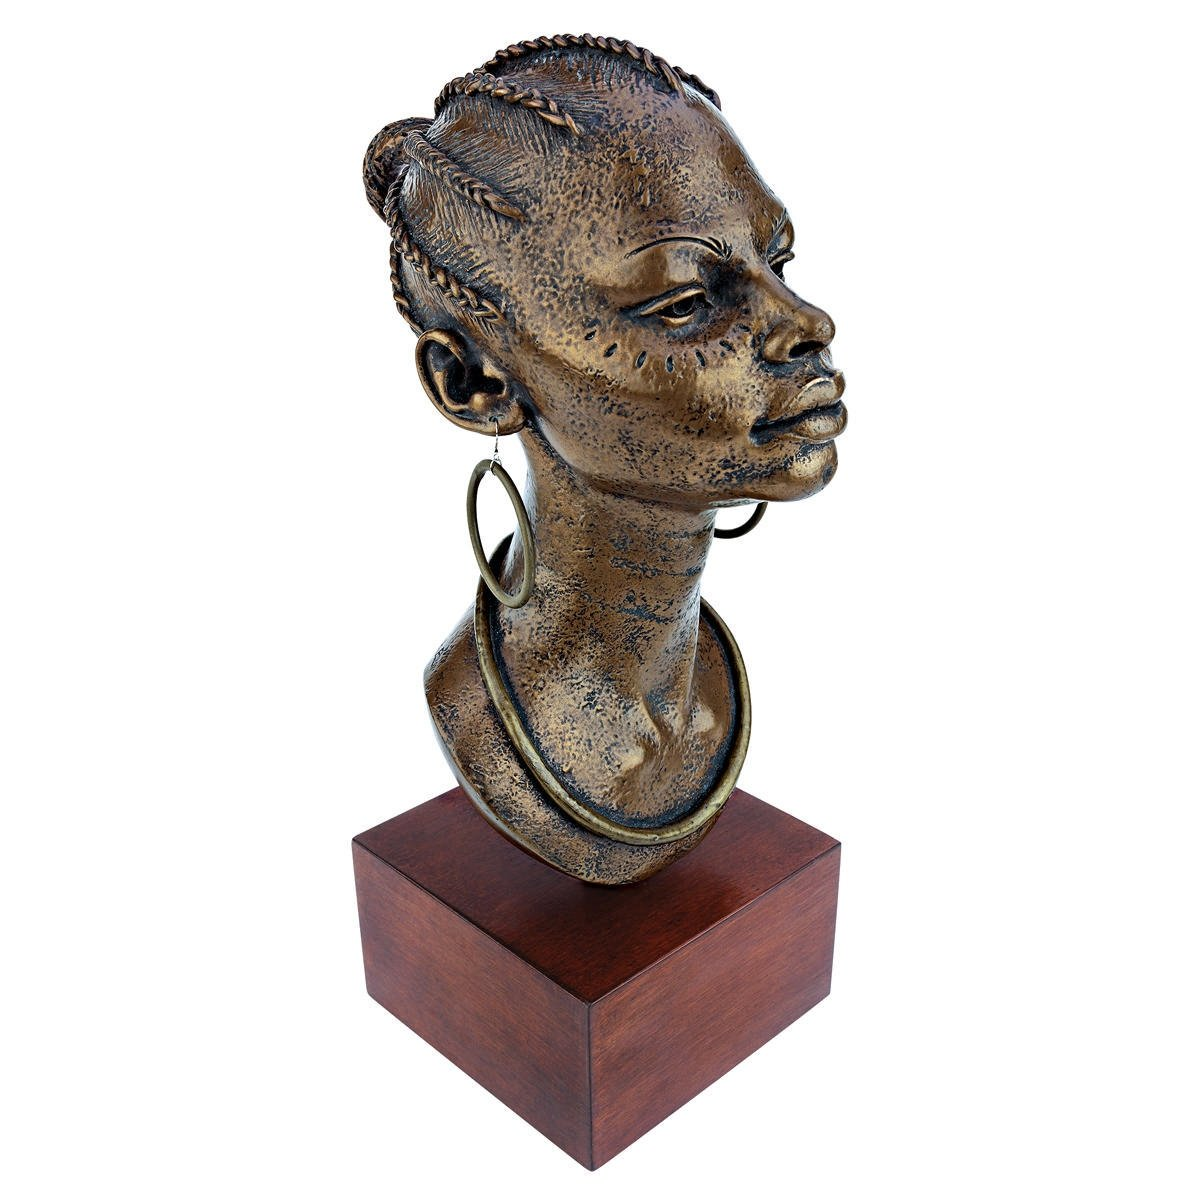 Design Toscano African Negresse Princess Bust Statue, Bronze by Design Toscano